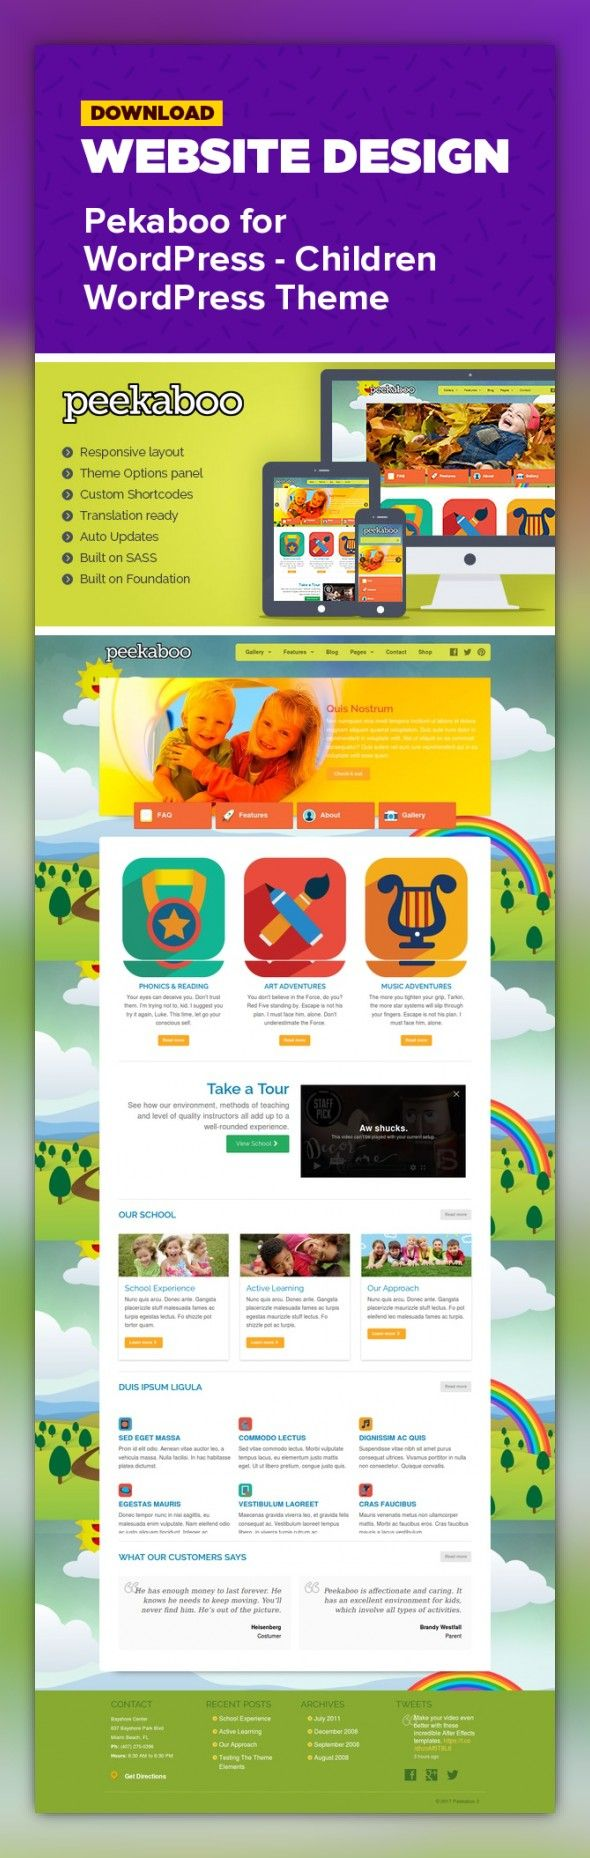 art, children, colorful, crafts, cute, flash, jquery, kids, lightbox, php, responsive, school, slider, twitter, vibrant      Peekaboo is a fully responsive themes suitable for daycare or school. It's feature rich and simple to use, designed     to give you control and     flexibility. It has all the tools you need to create a school website or small business.                                                                          ...